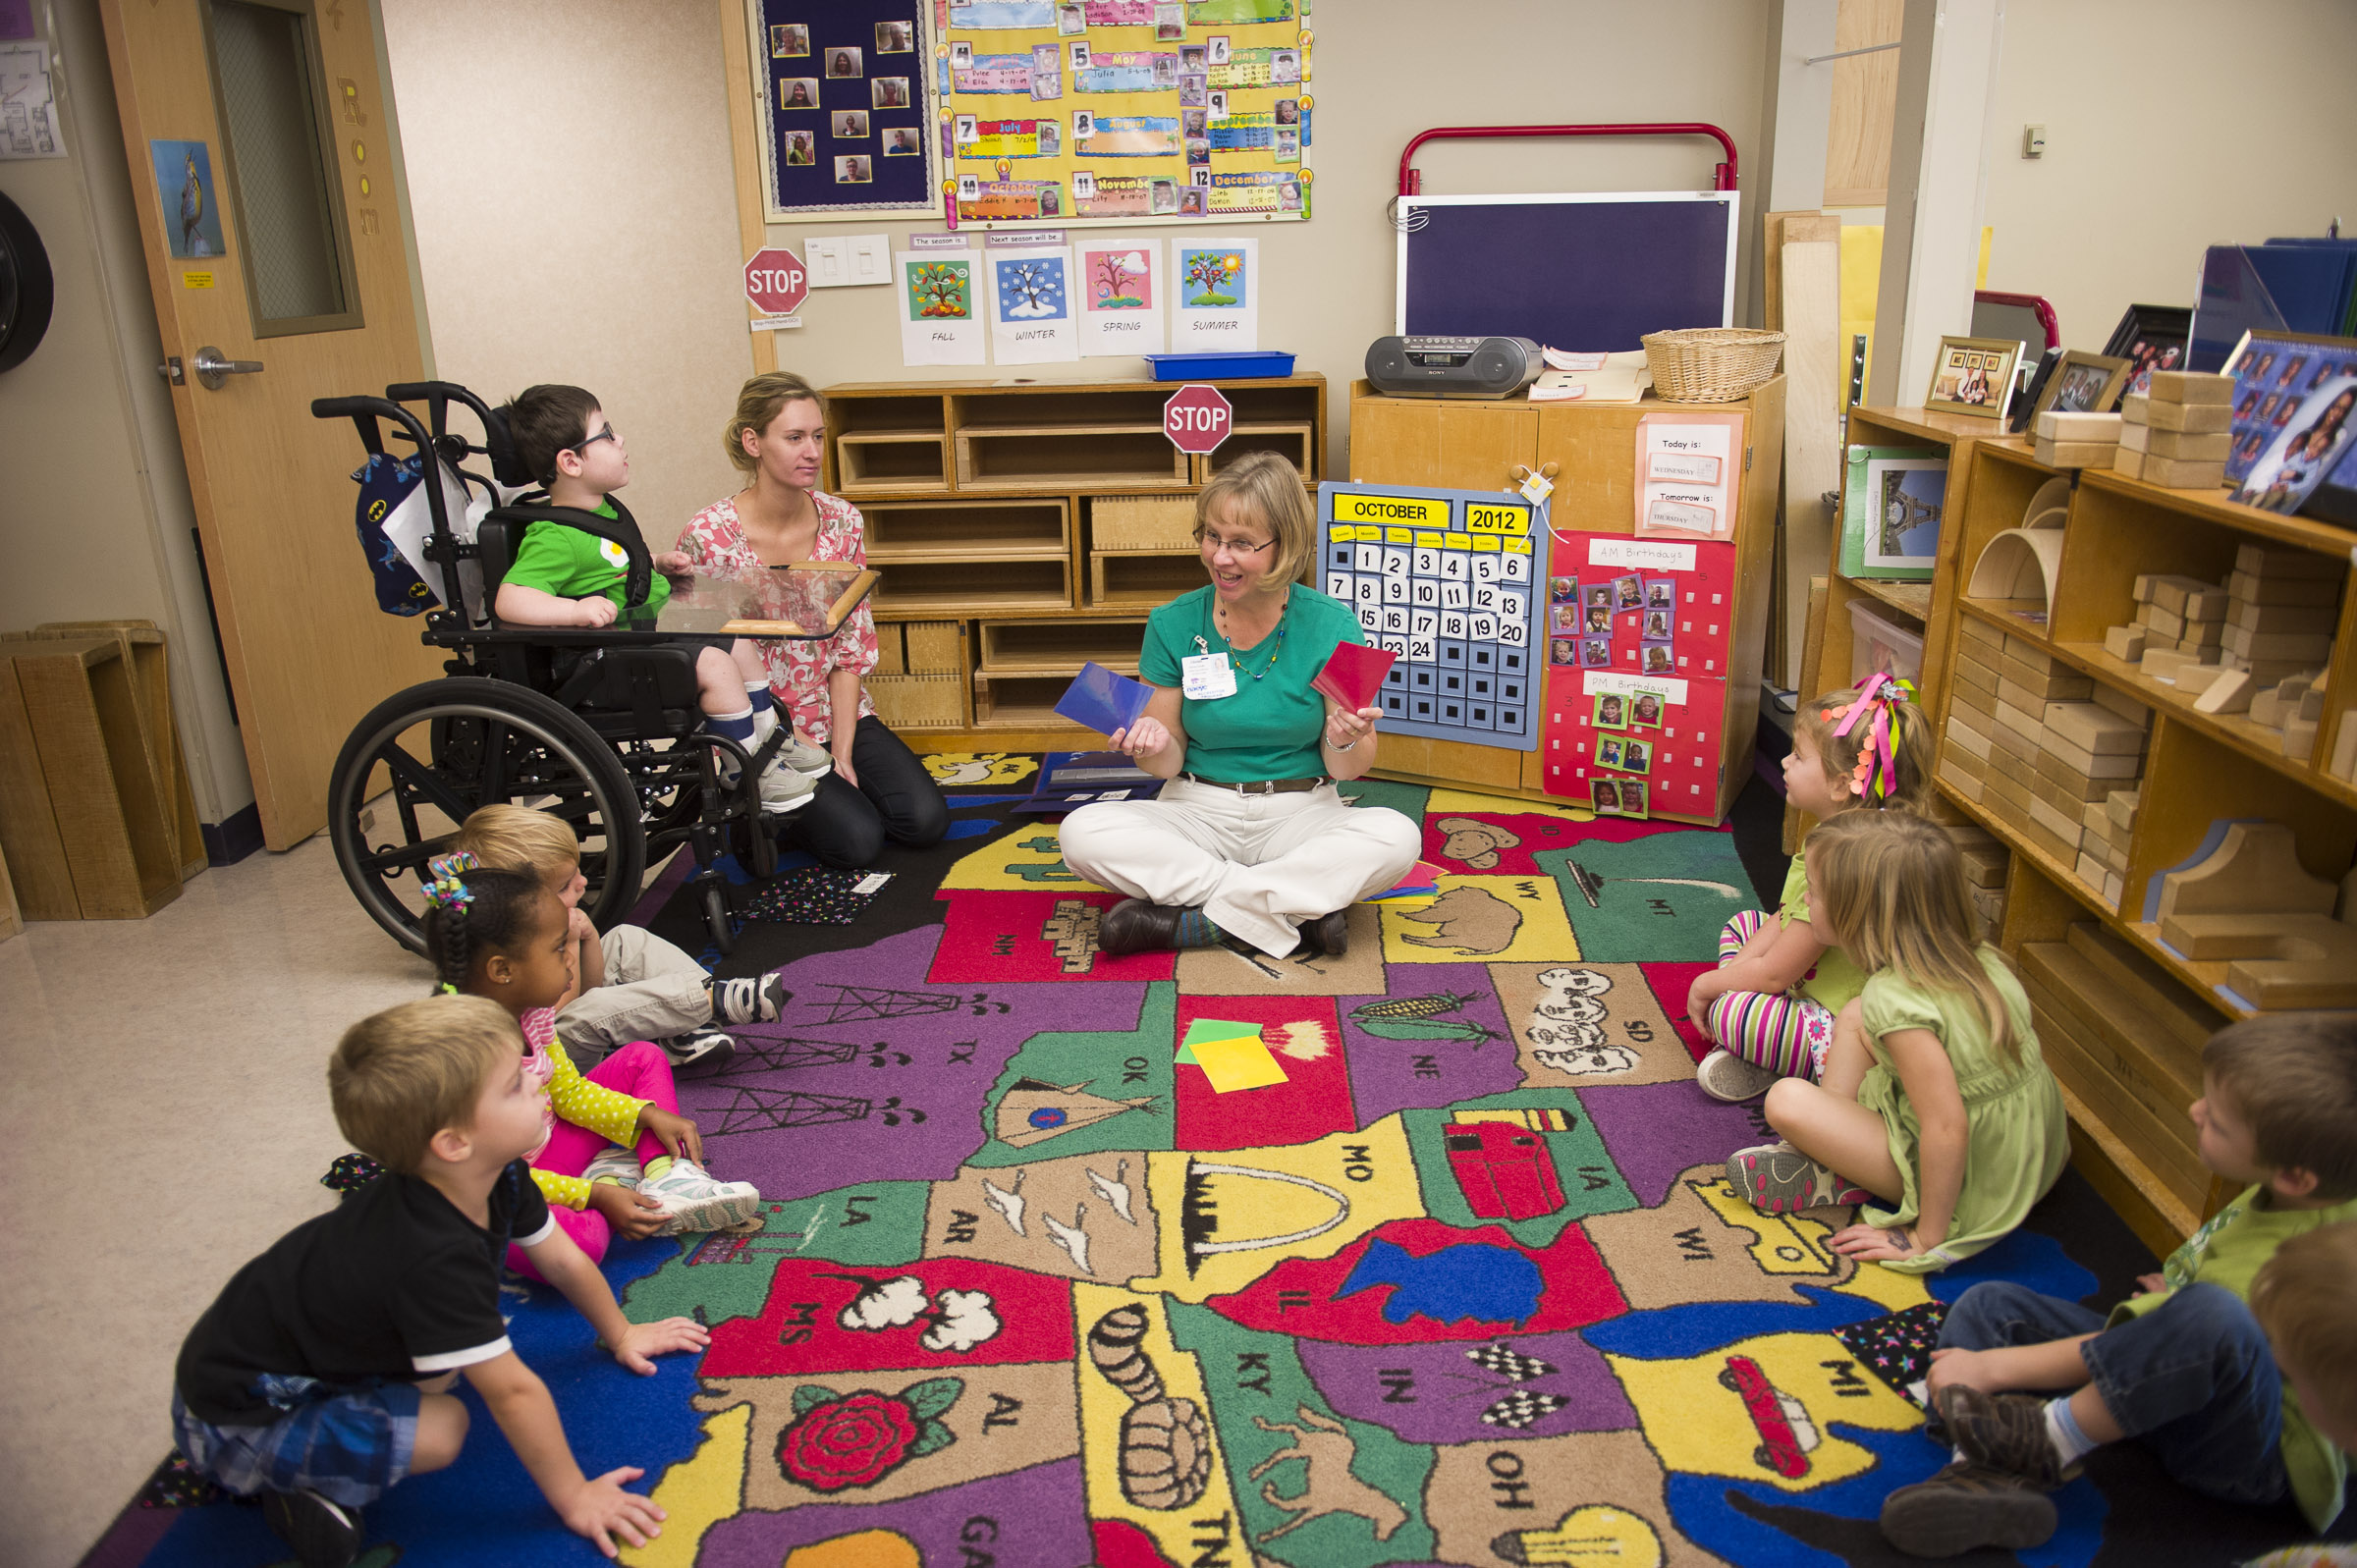 Kansas State University Child Development Scholar Suggests